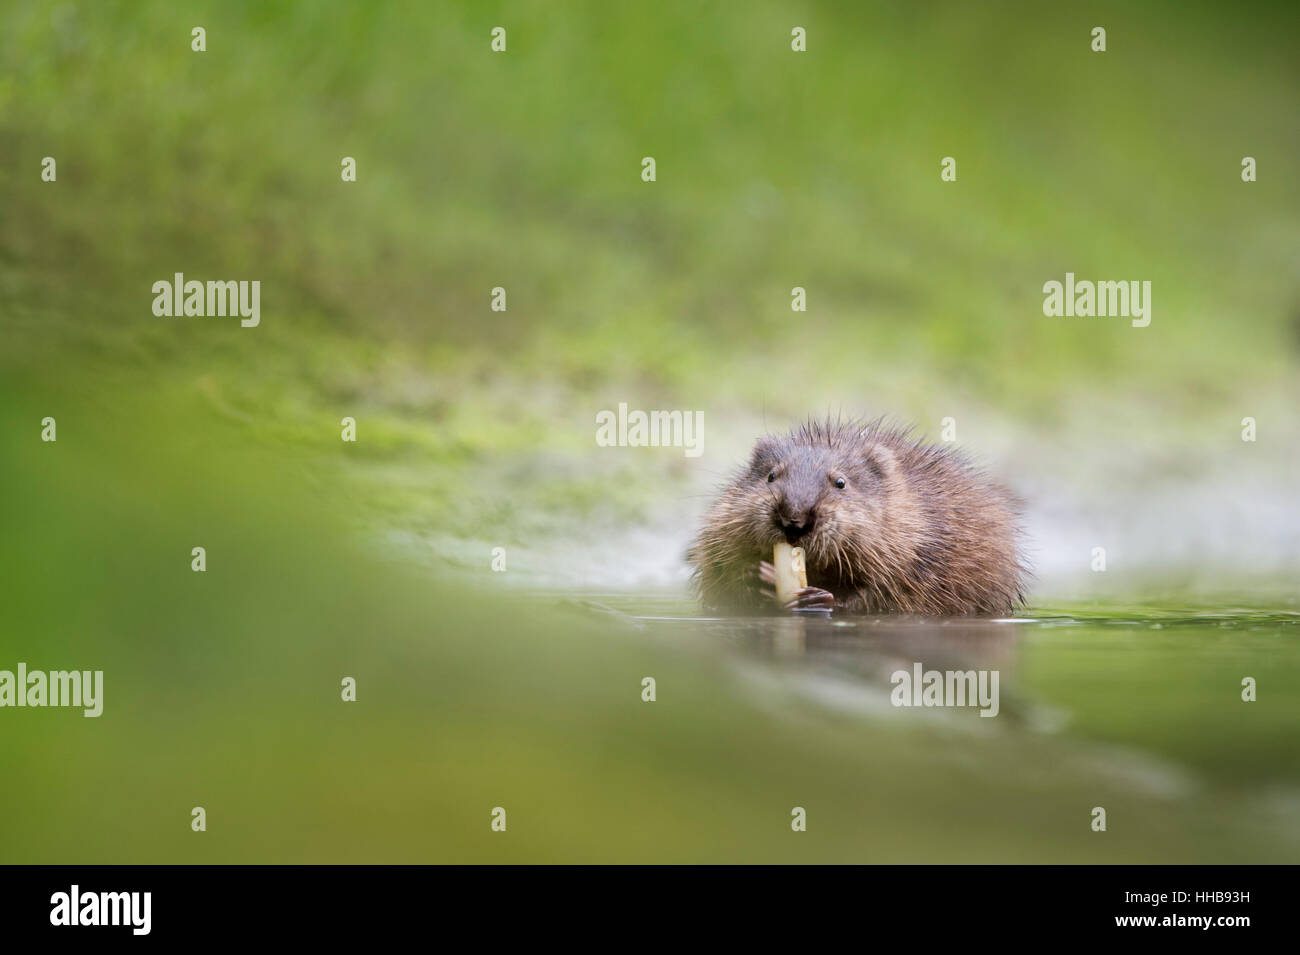 A Muskrat sits in the shallow water eating some aquatic vegetation on a warm overcast summer morning. - Stock Image